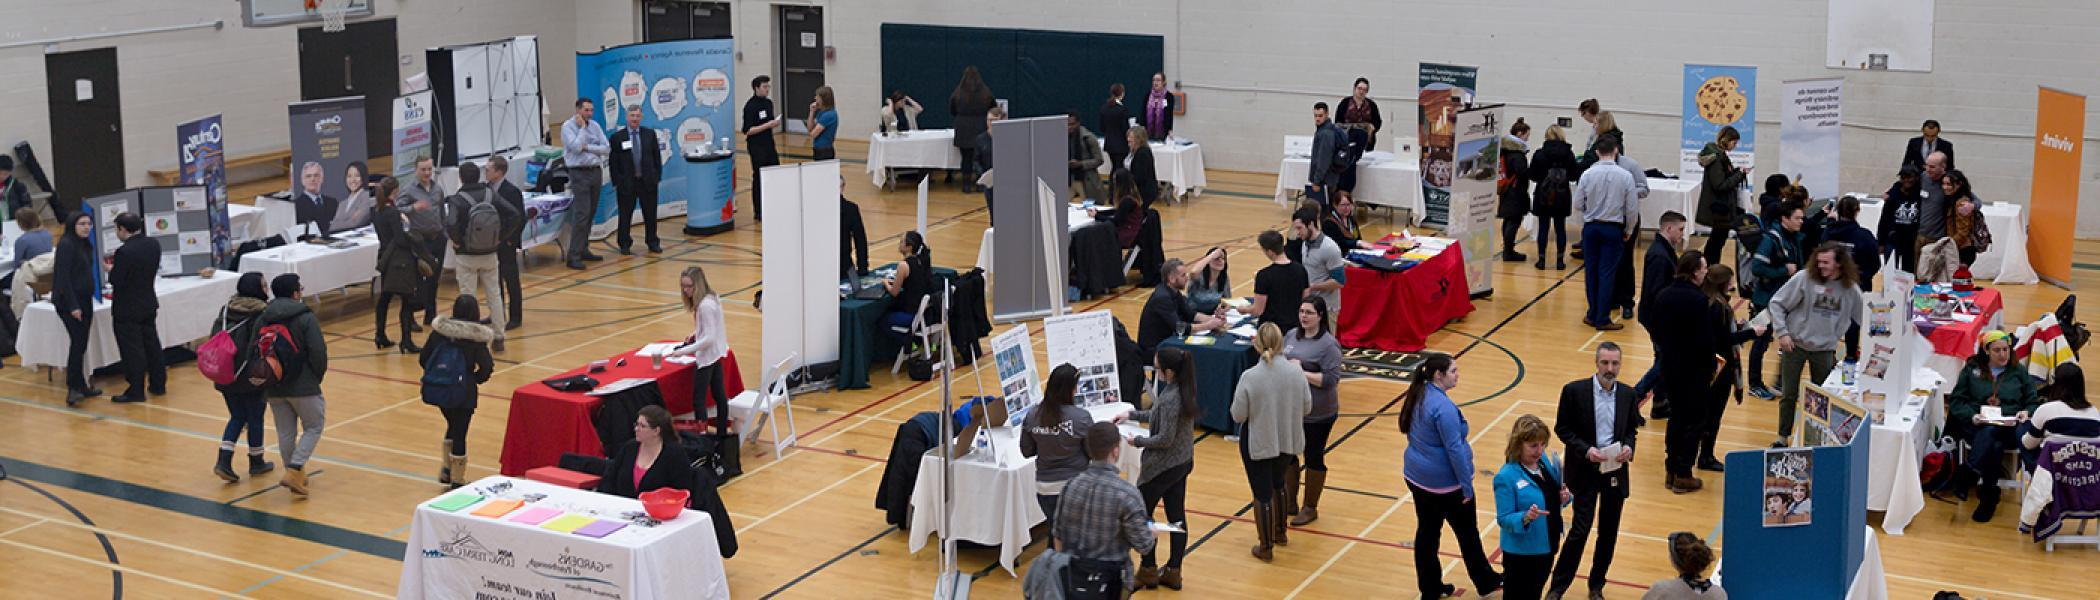 a career fair put on by career services at trent university in the justin chiu athletics centre